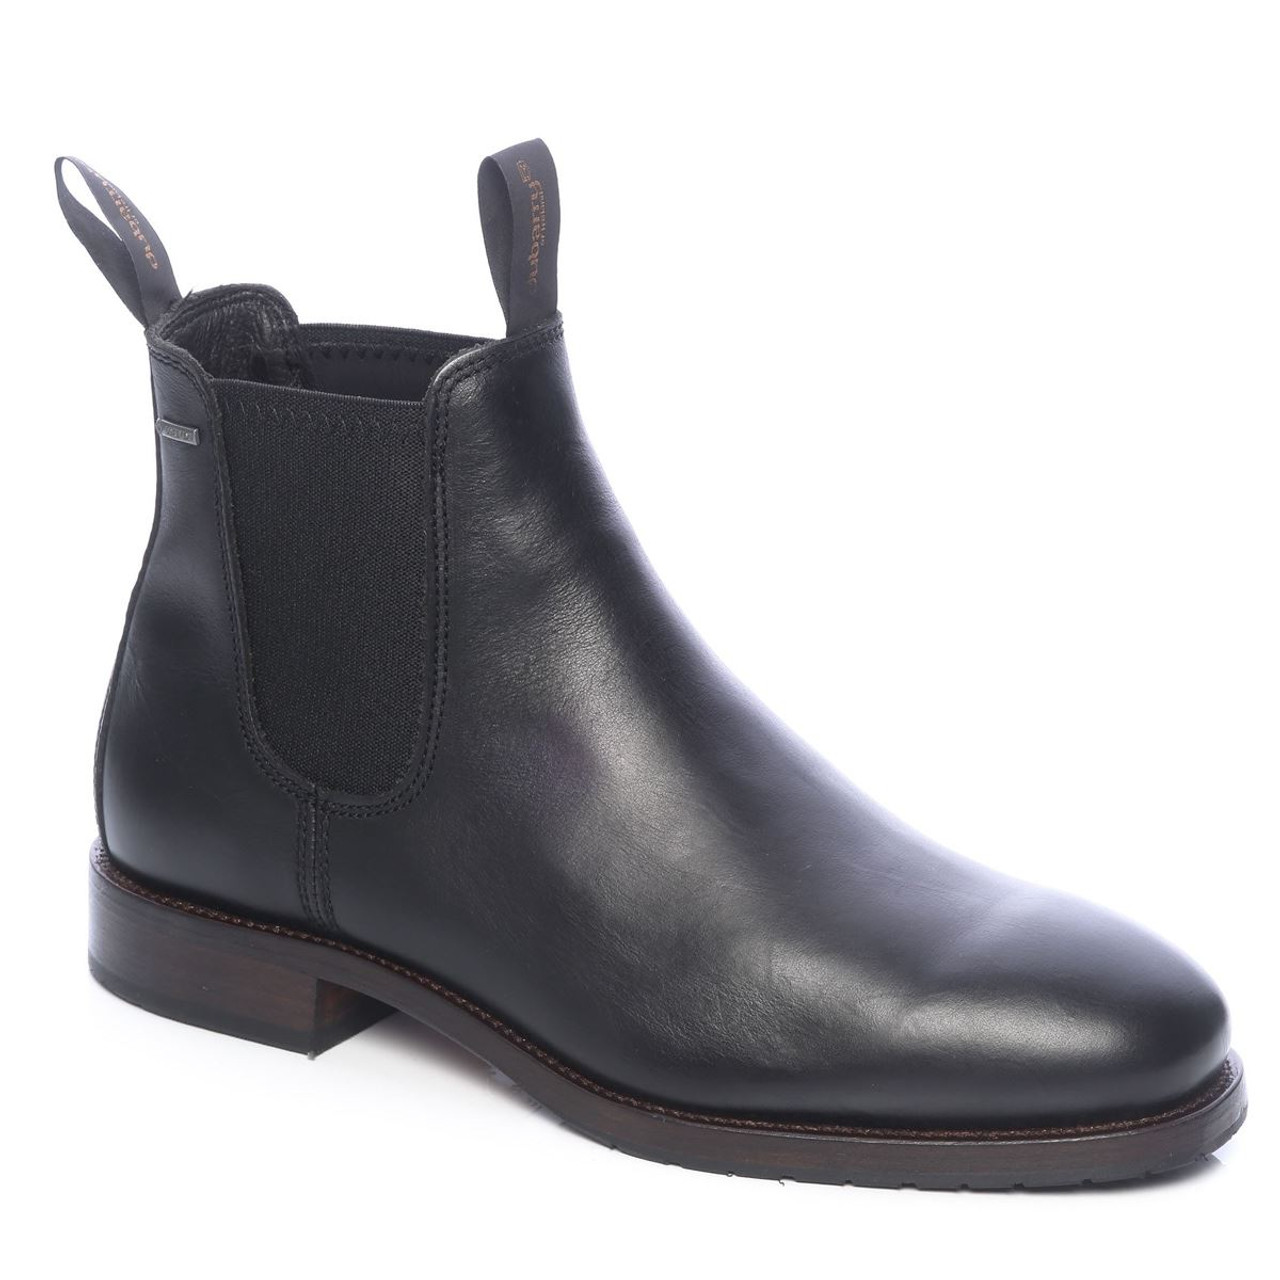 Black Dubarry Men's Kerry Boots